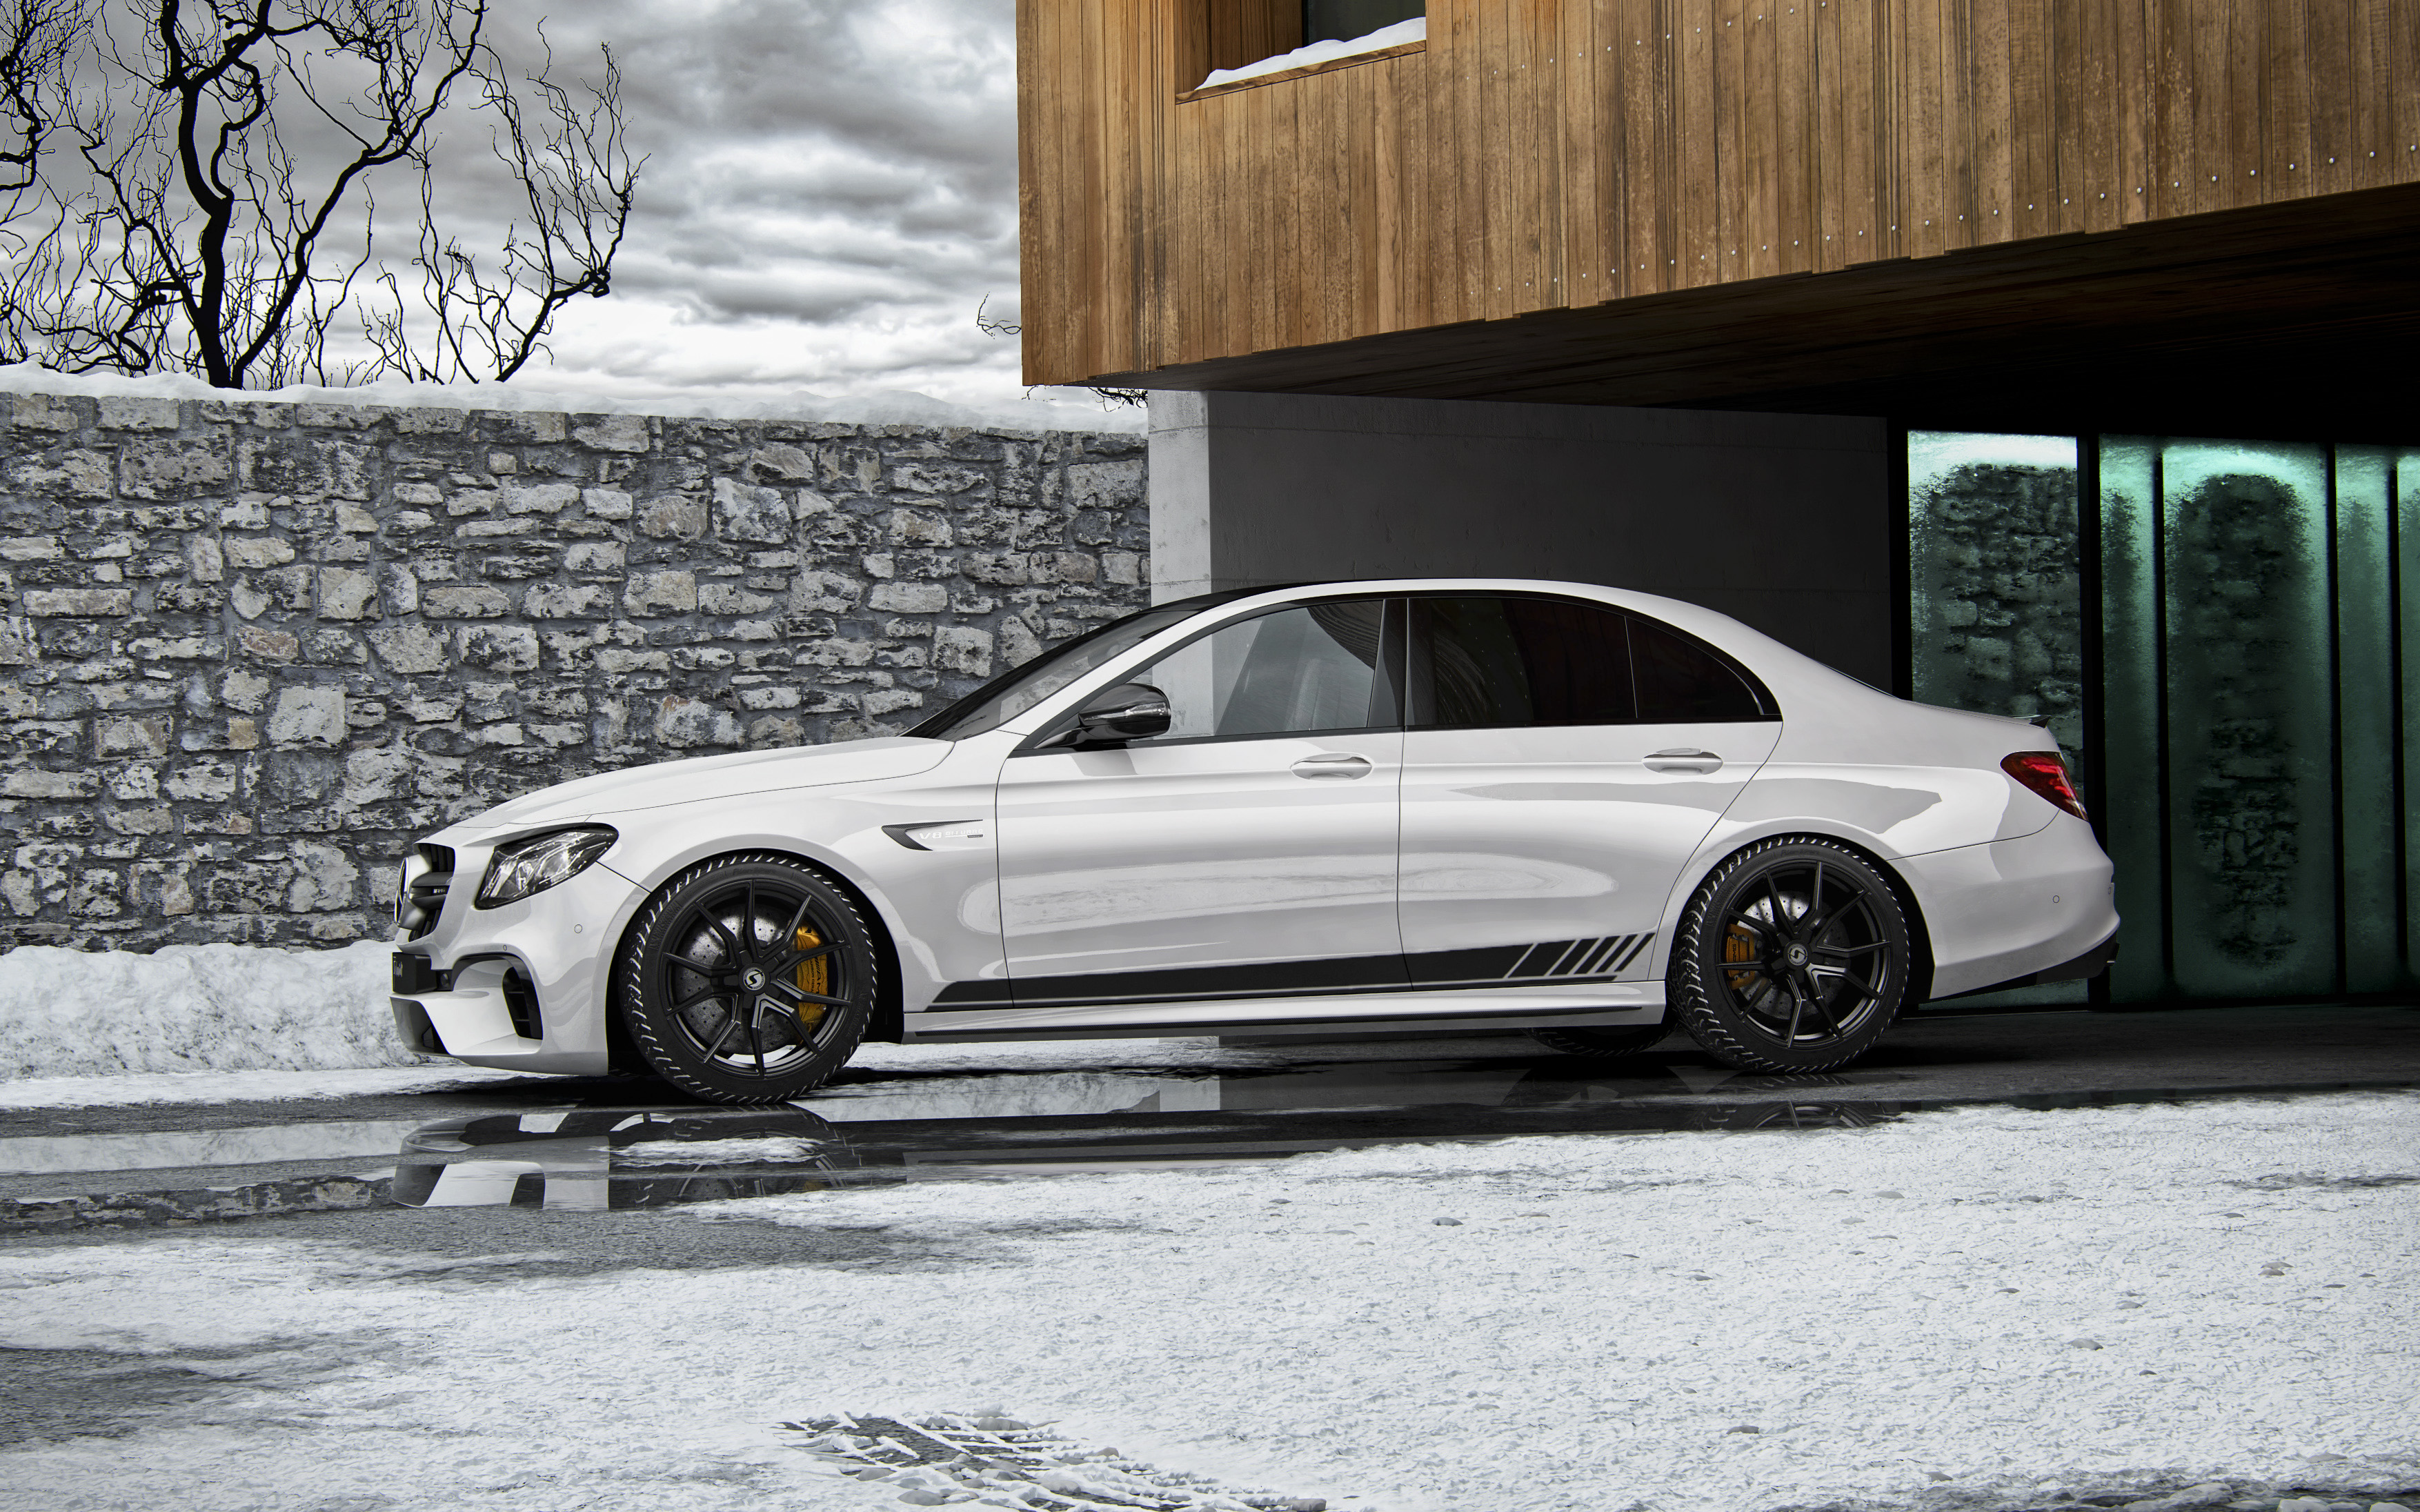 mercedes e klasse amg e63 4 matic 63s winterfelgen. Black Bedroom Furniture Sets. Home Design Ideas